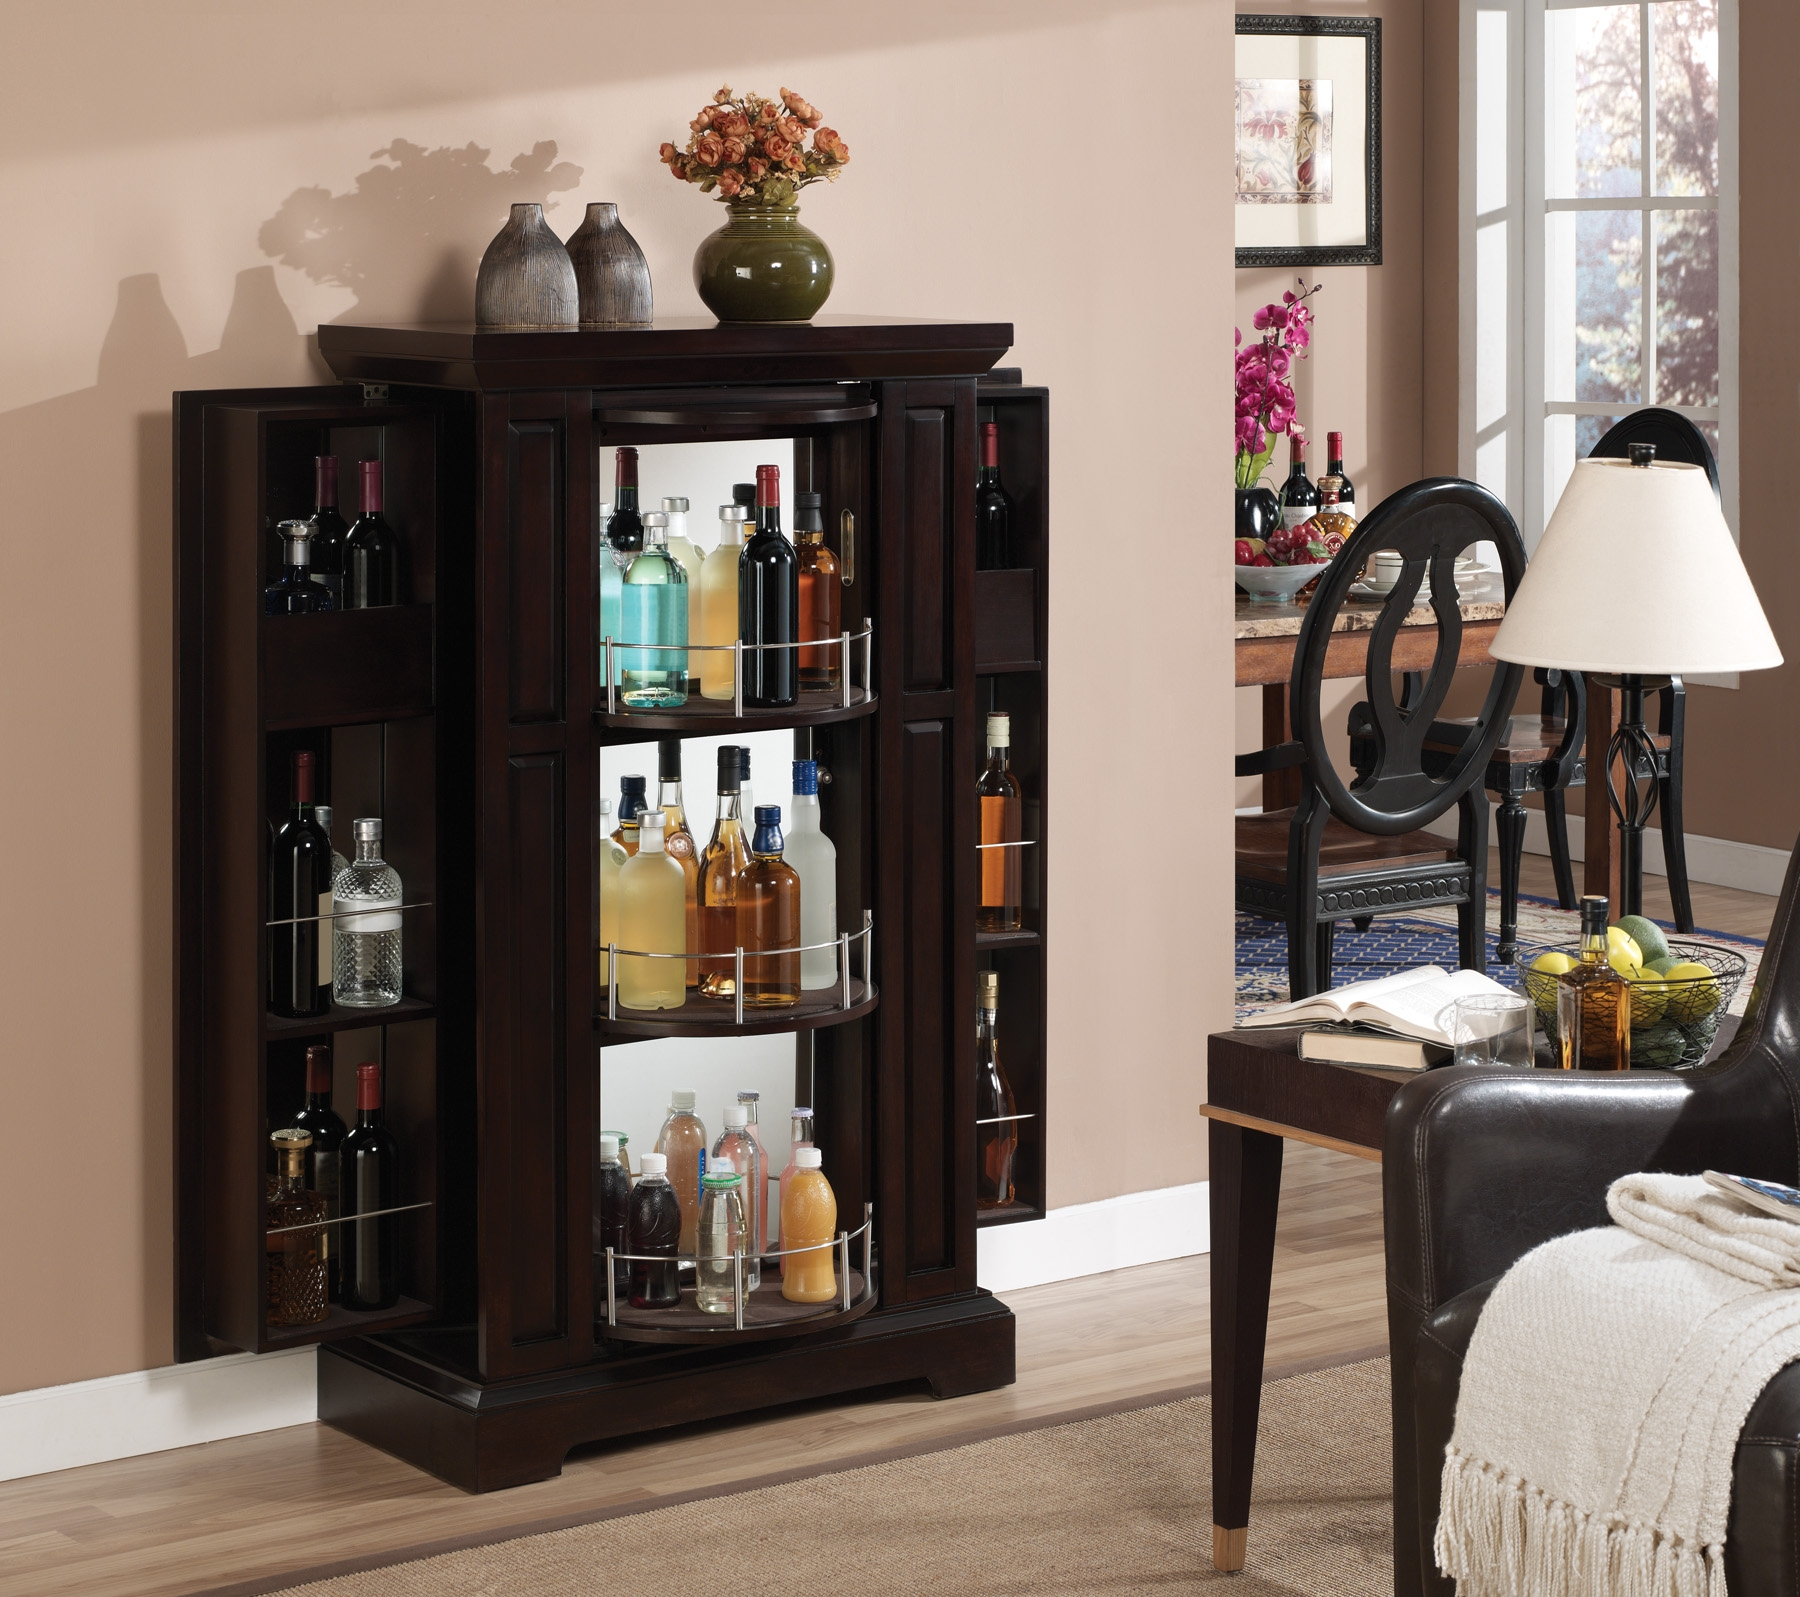 Liquor Bottle Storage Cabinets